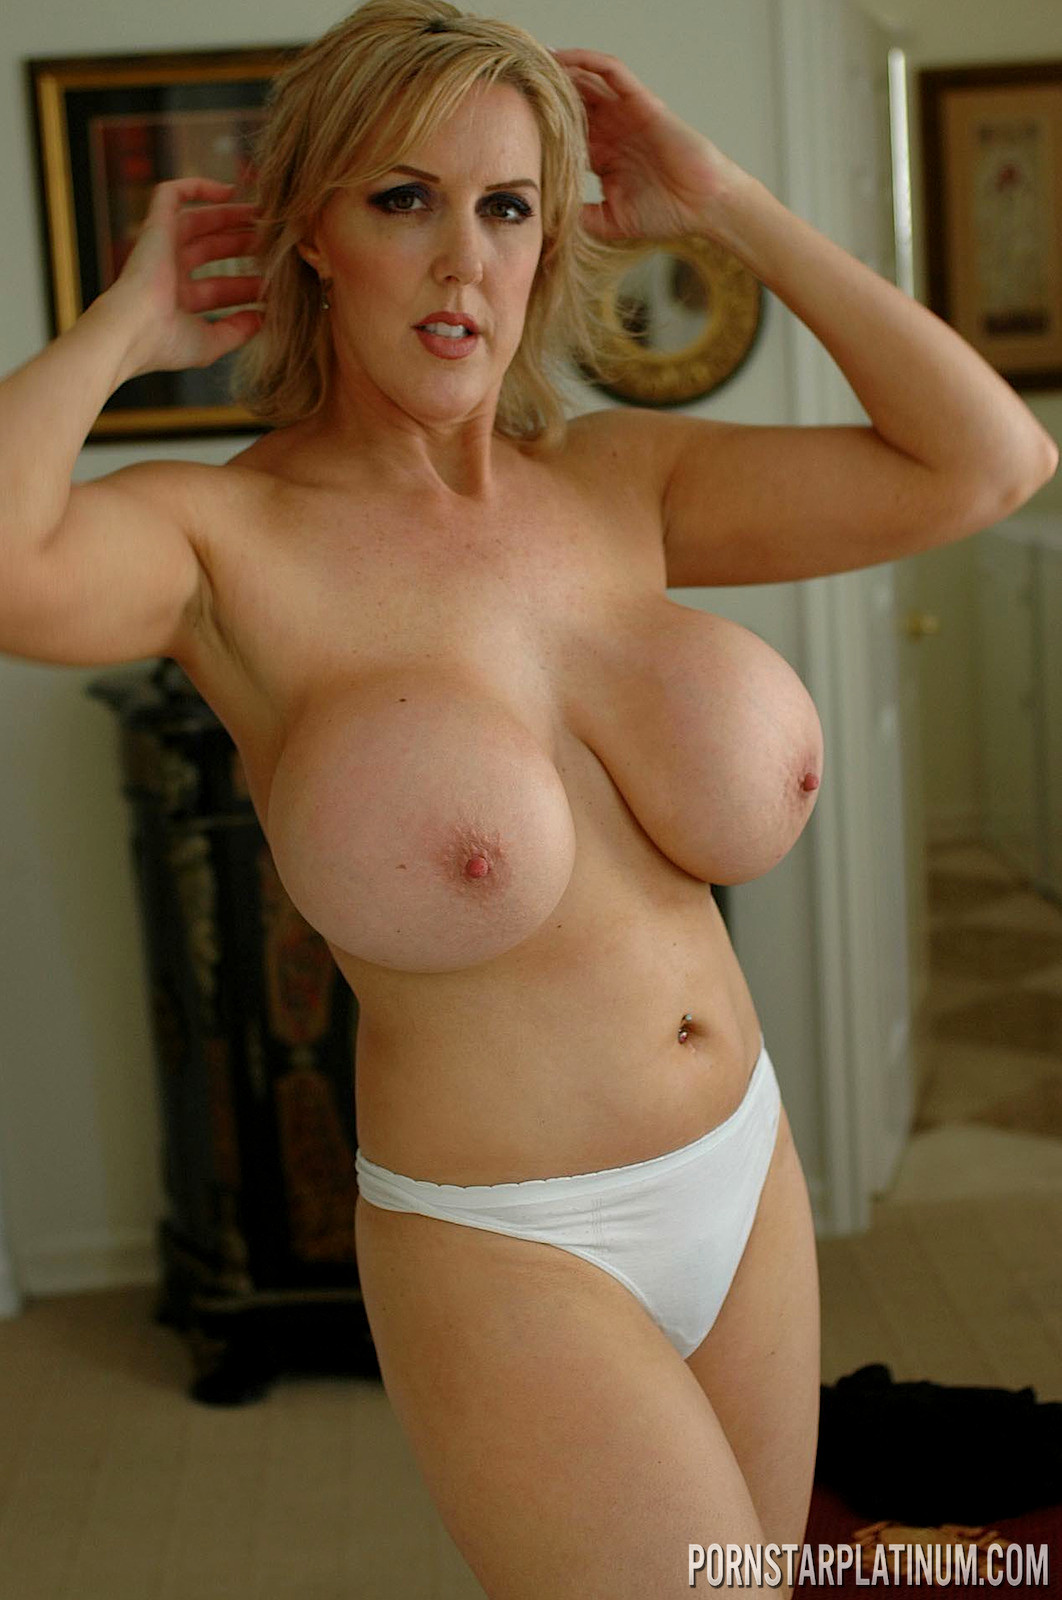 Jay galleries of big tits hot. She's